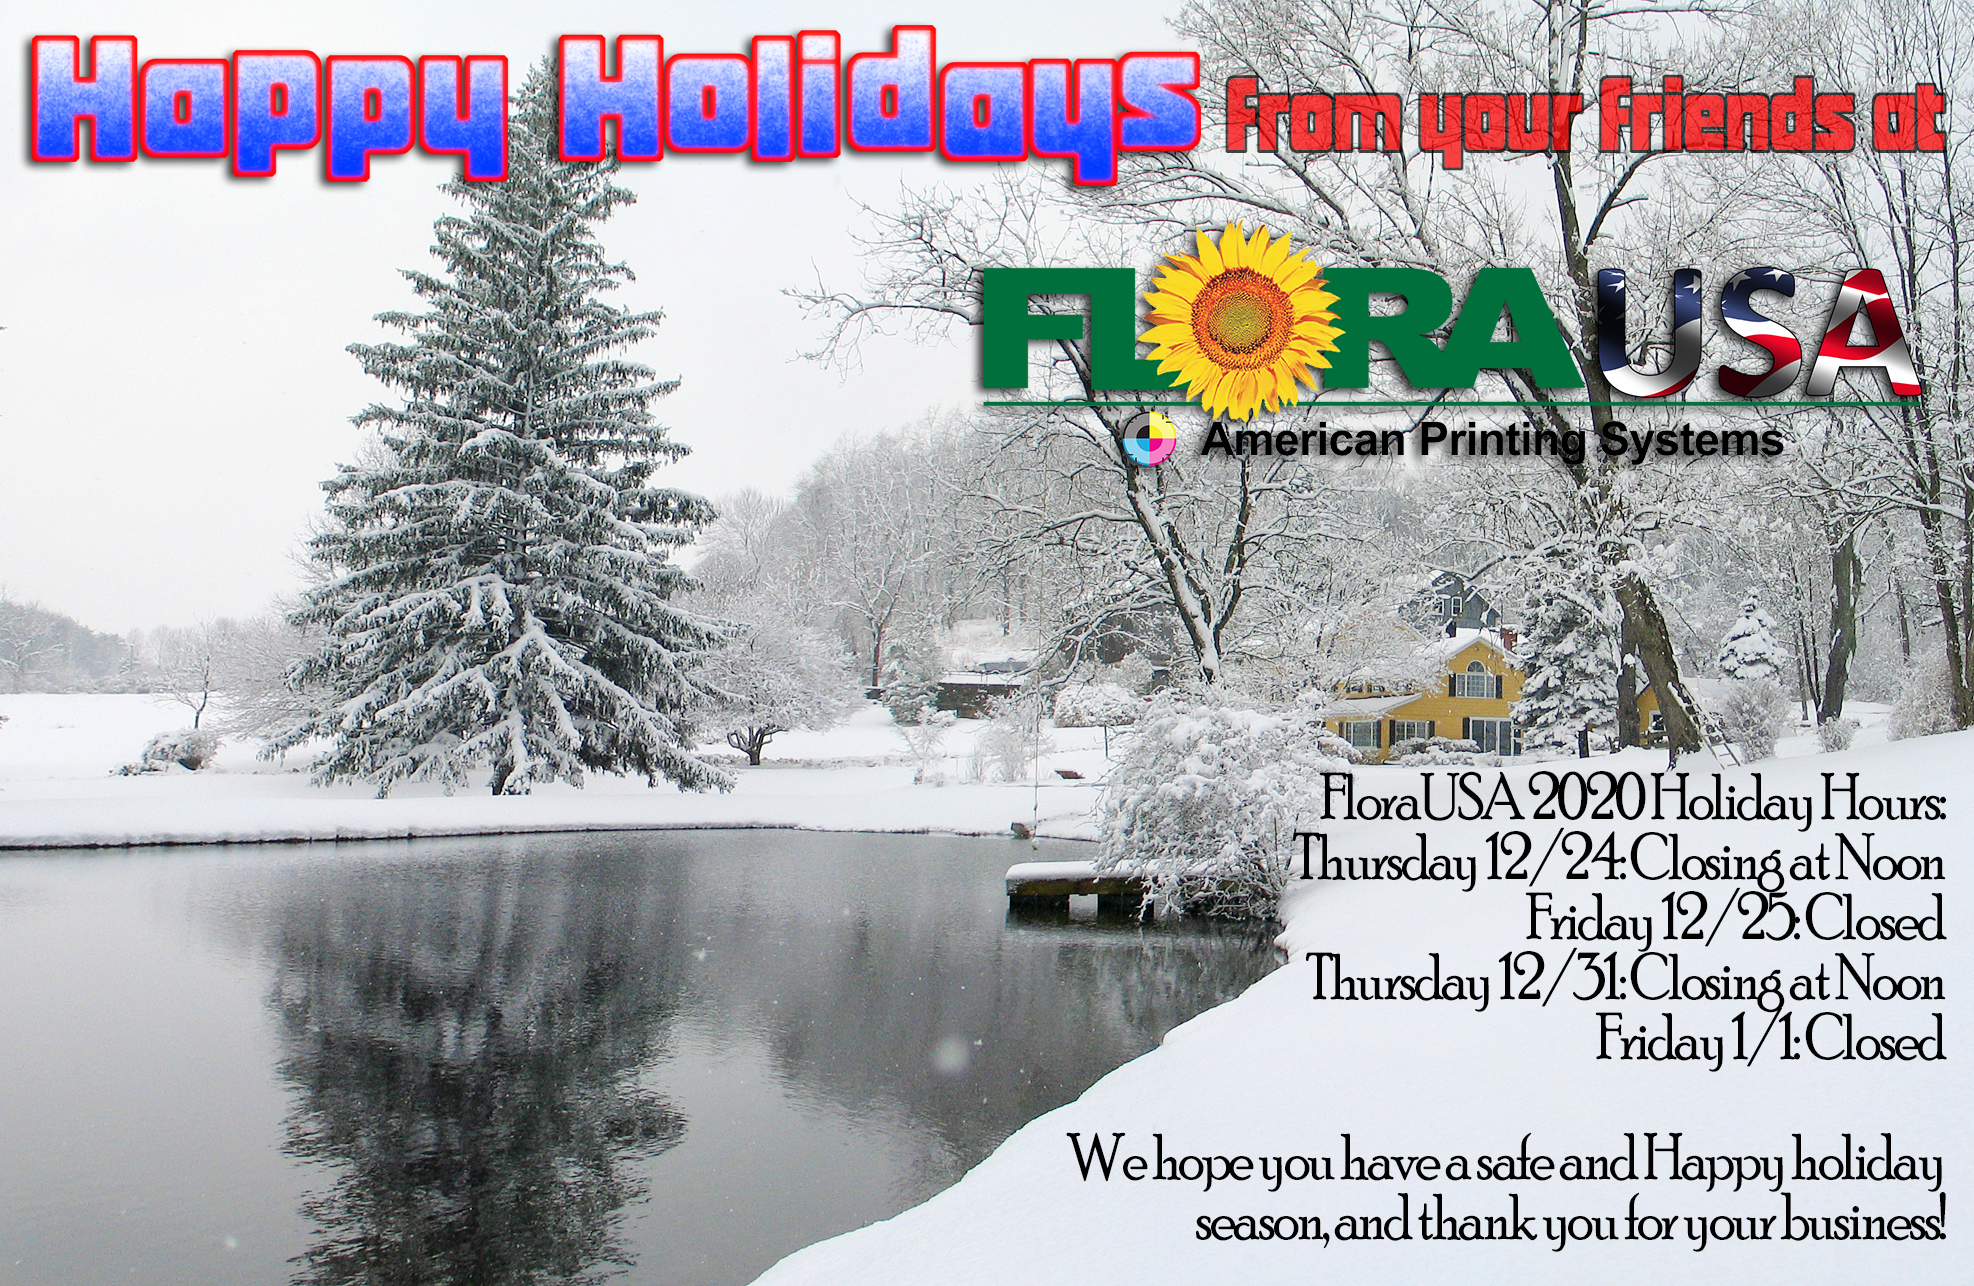 Happy Holidays from FloraUSA